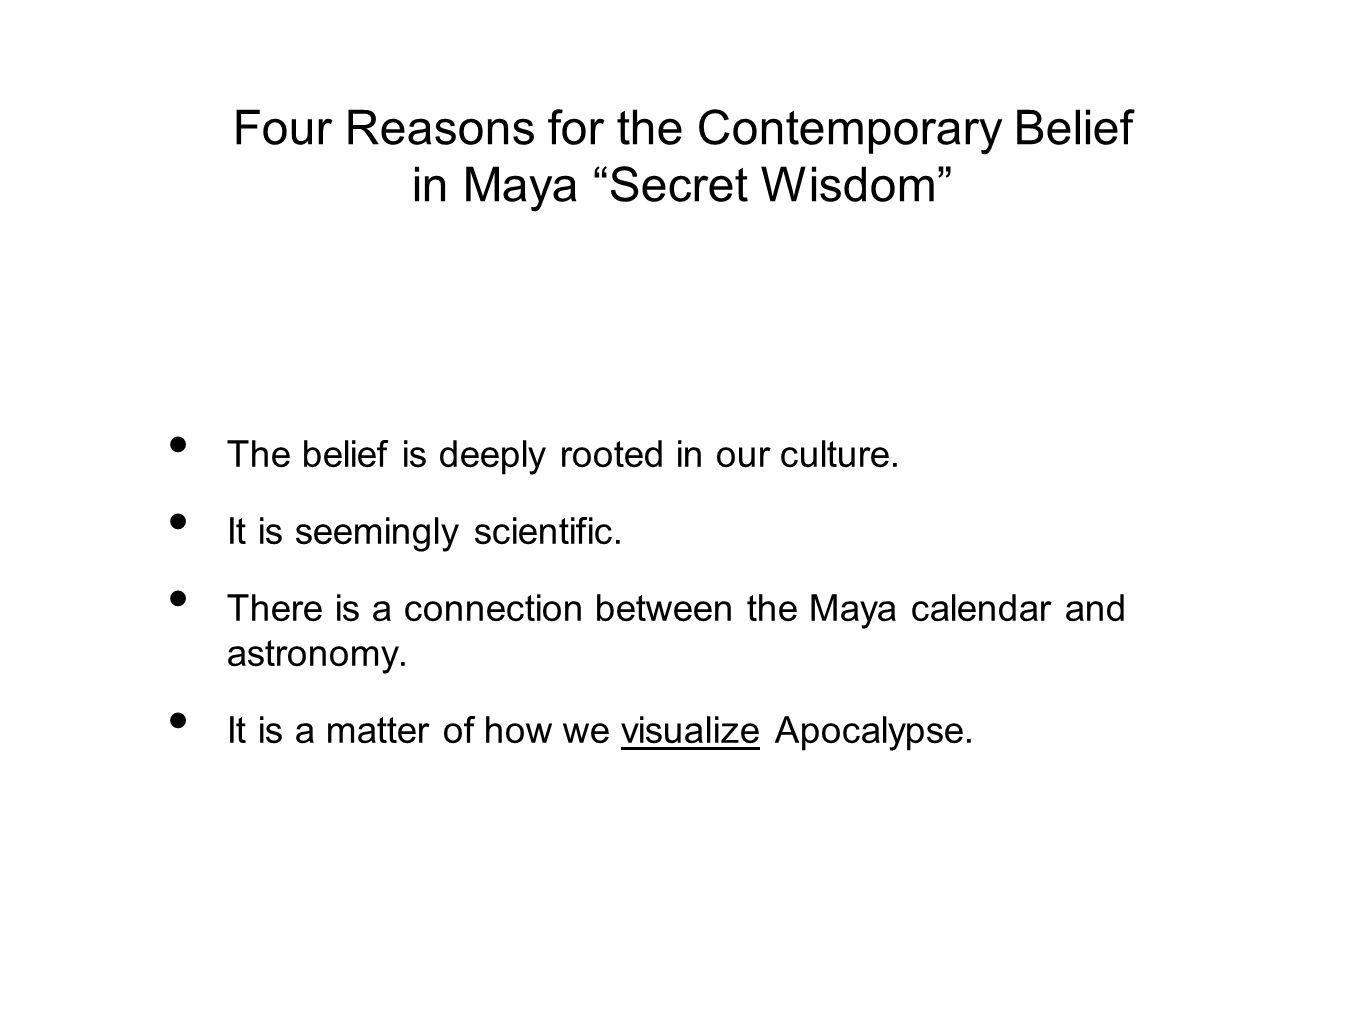 Four Reasons for the Contemporary Belief in Maya Secret Wisdom The belief is deeply rooted in our culture.